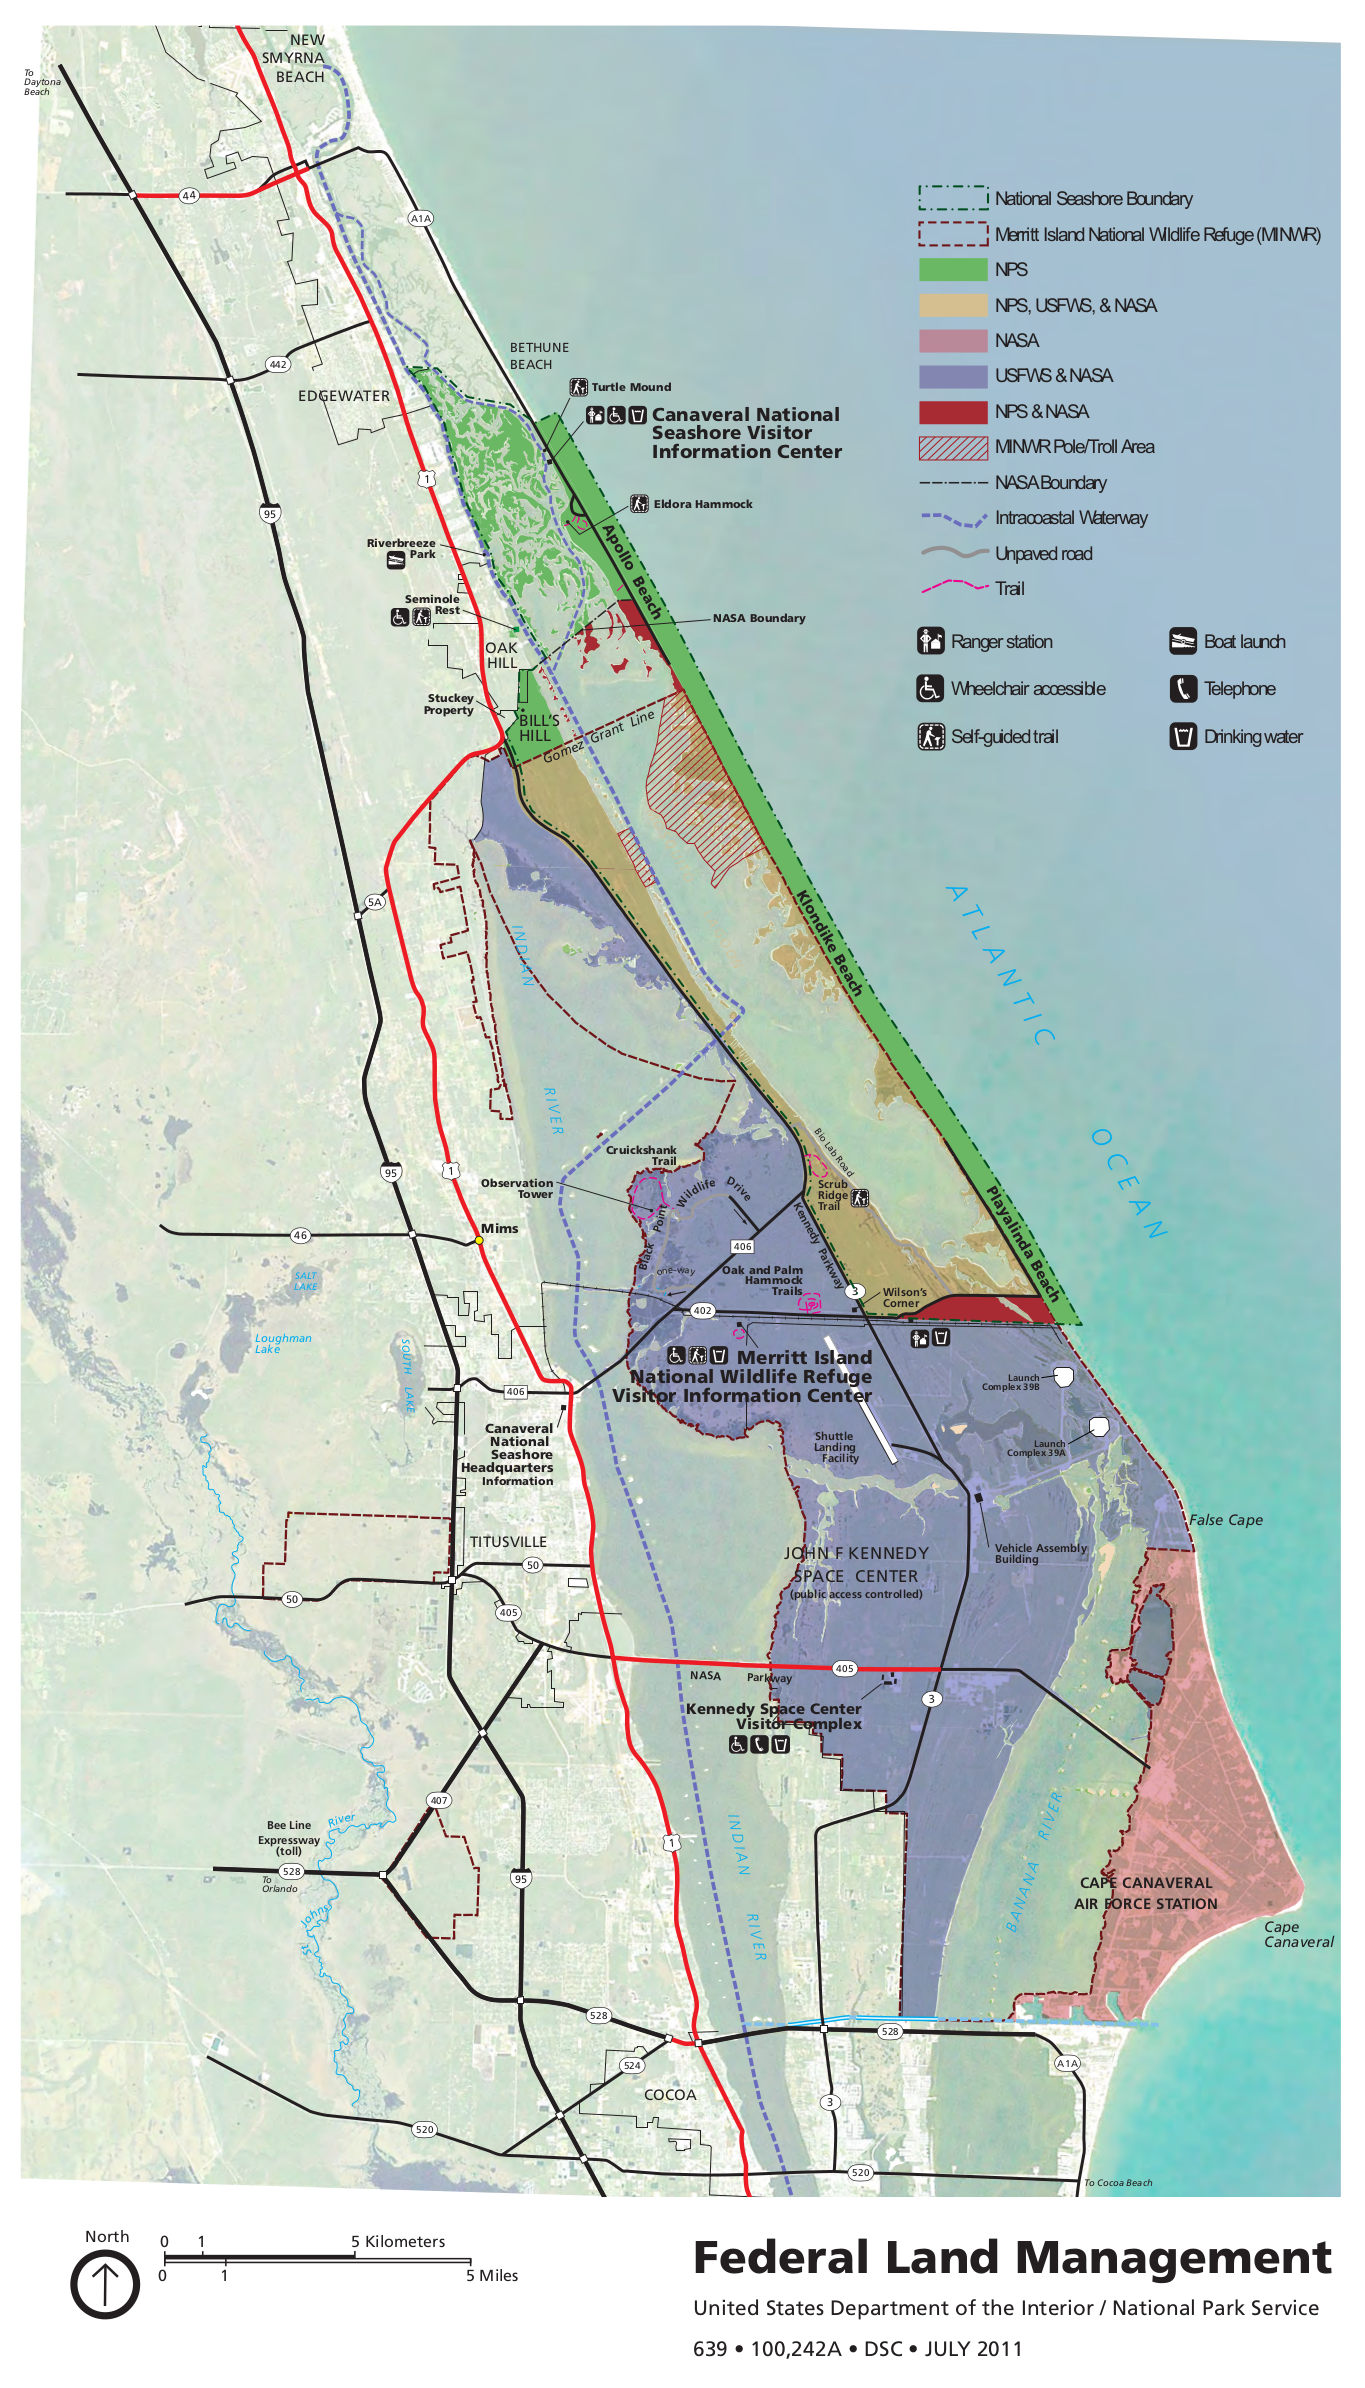 canaveral land management map. canaveral maps  npmapscom  just free maps period